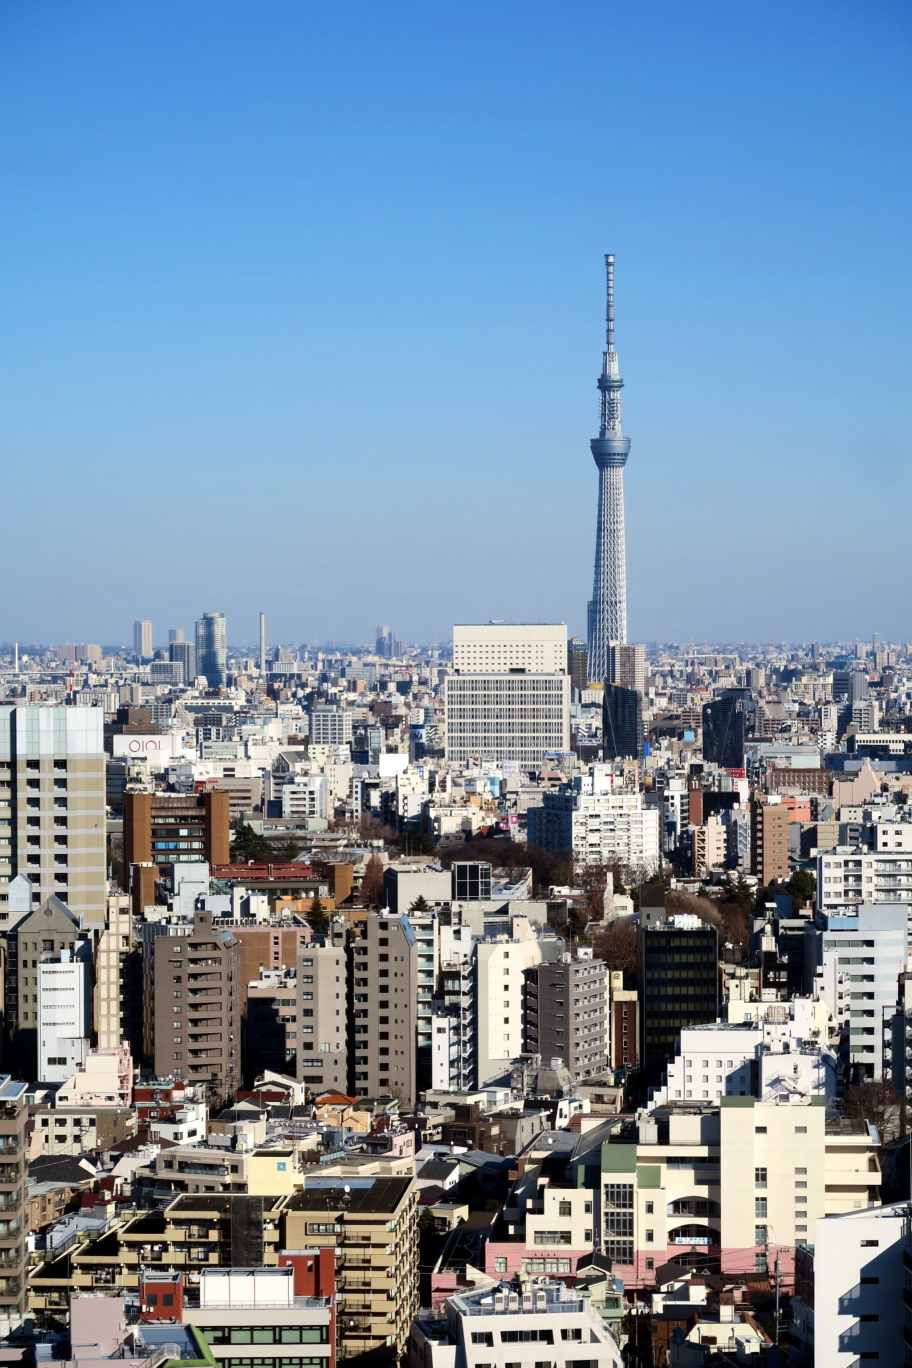 View of SkyTree from Bunkyo Civic Center Tokyo Japan